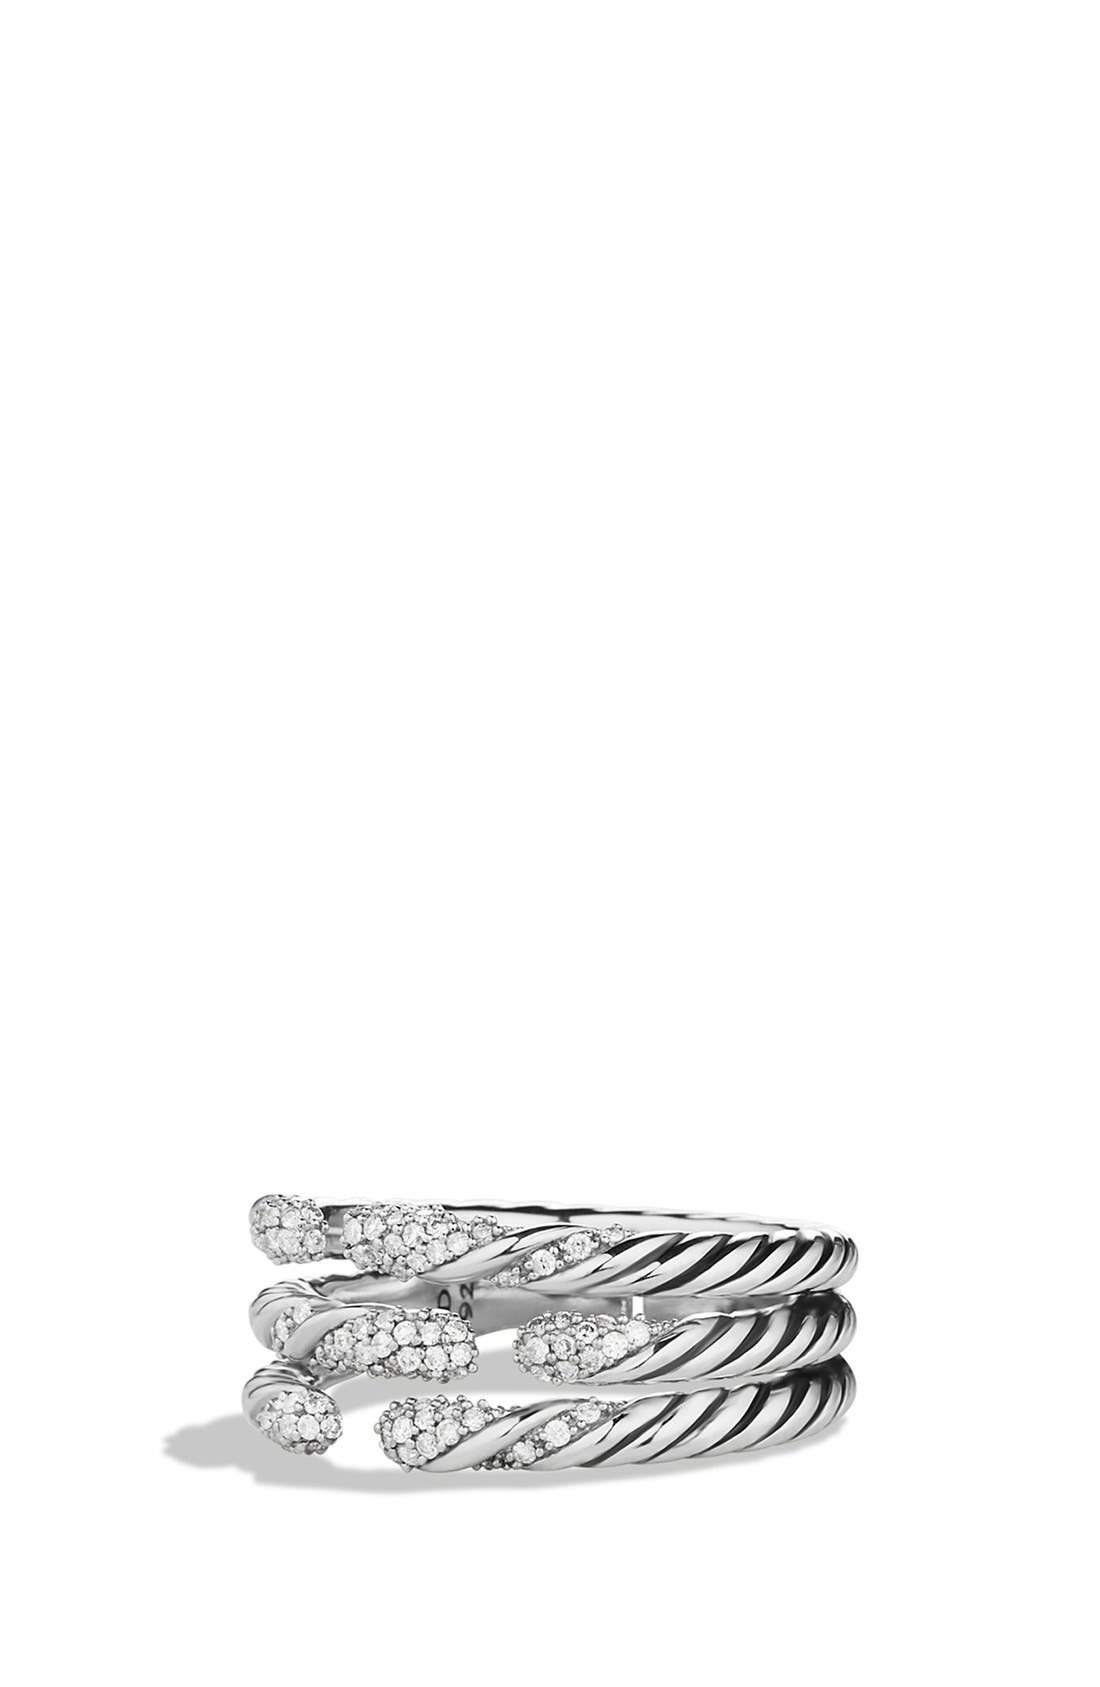 David Yurman 'Willow' Three-Row Ring with Diamonds